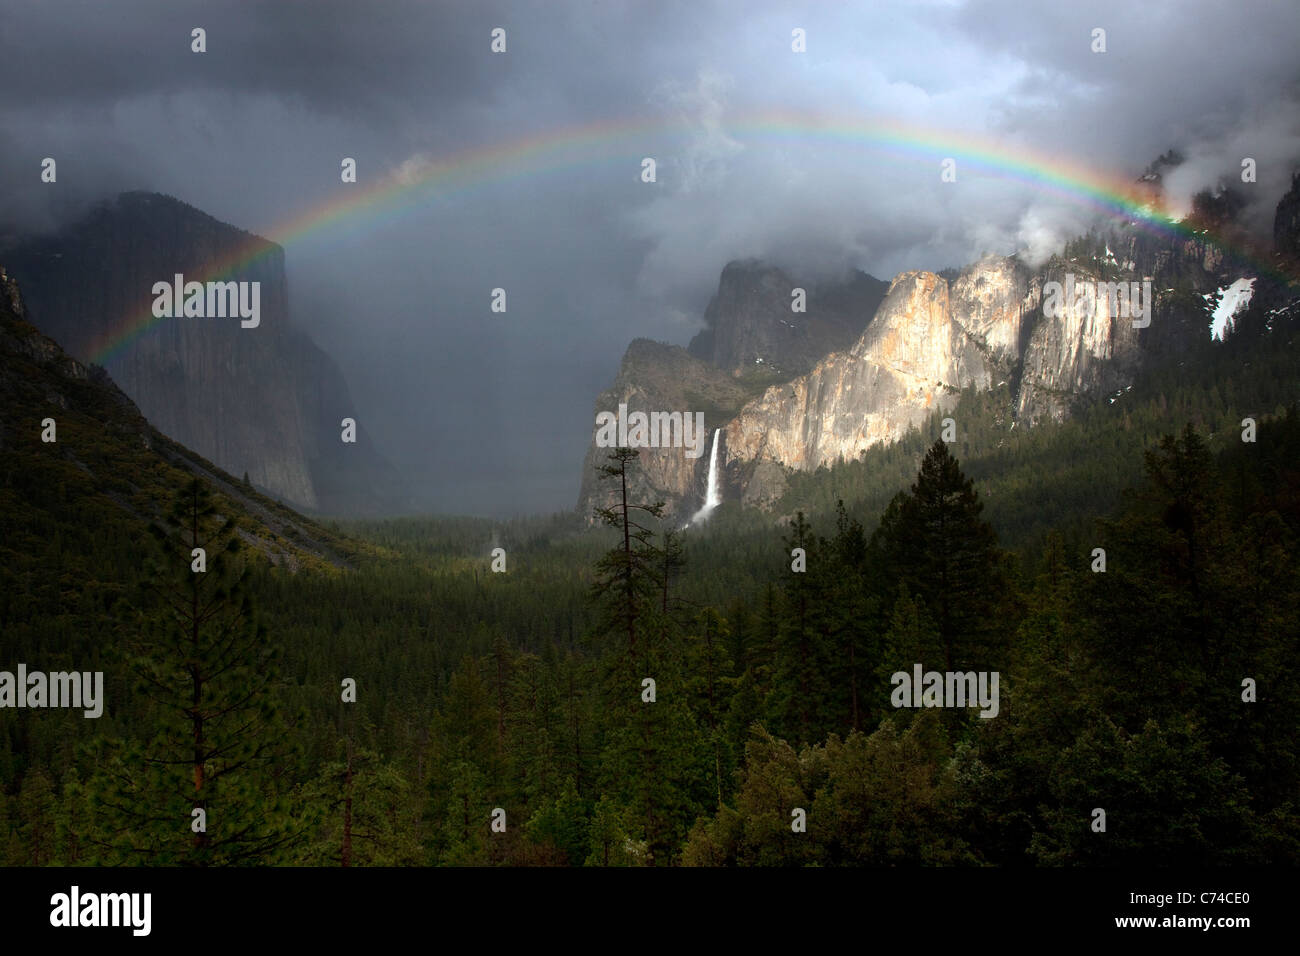 A beautiful rainbow appears over Yosemite Valley following a rain storm. Stock Photo